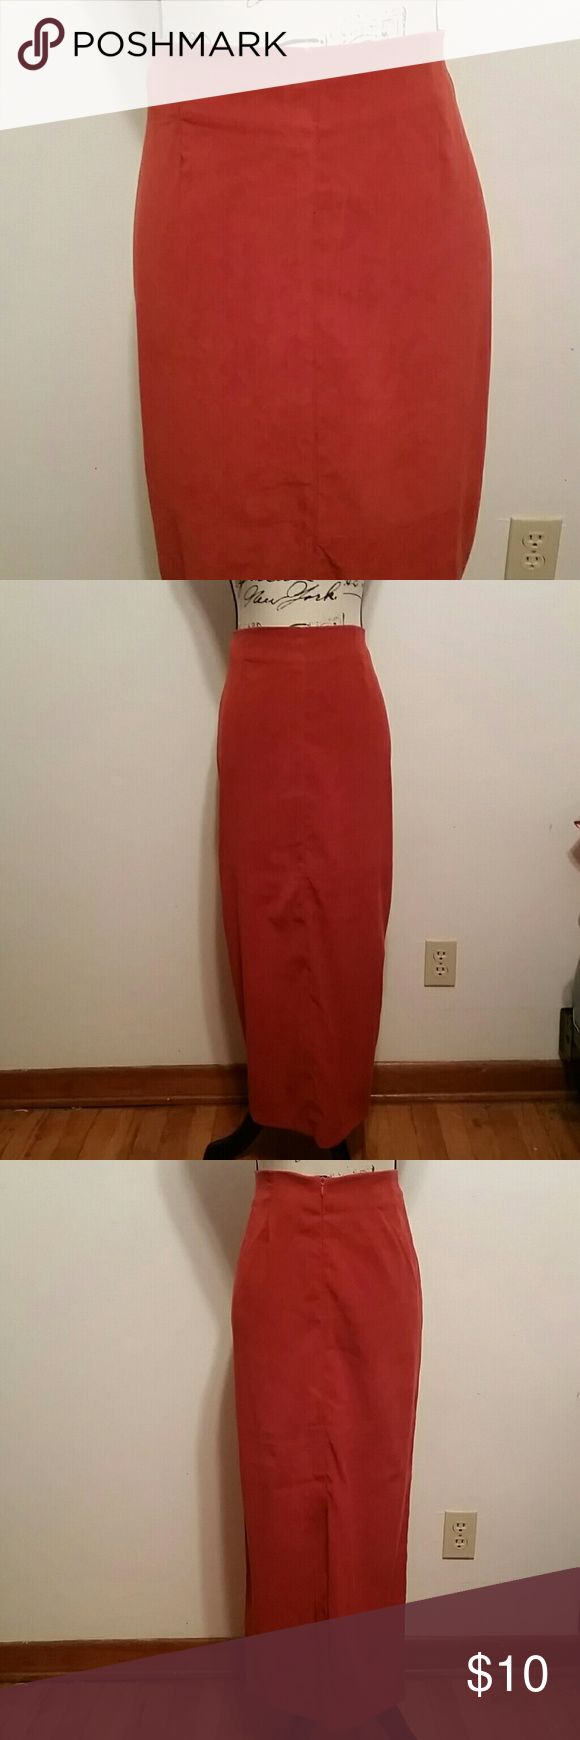 "Burnt Orange Maxi Skirt Pretty burnt orange maxi skirt in like new condition. This skirt has a slight look of suede and is a fantastic color. 38"" in length with no rips, stains or signs of wear. good clothes Skirts"